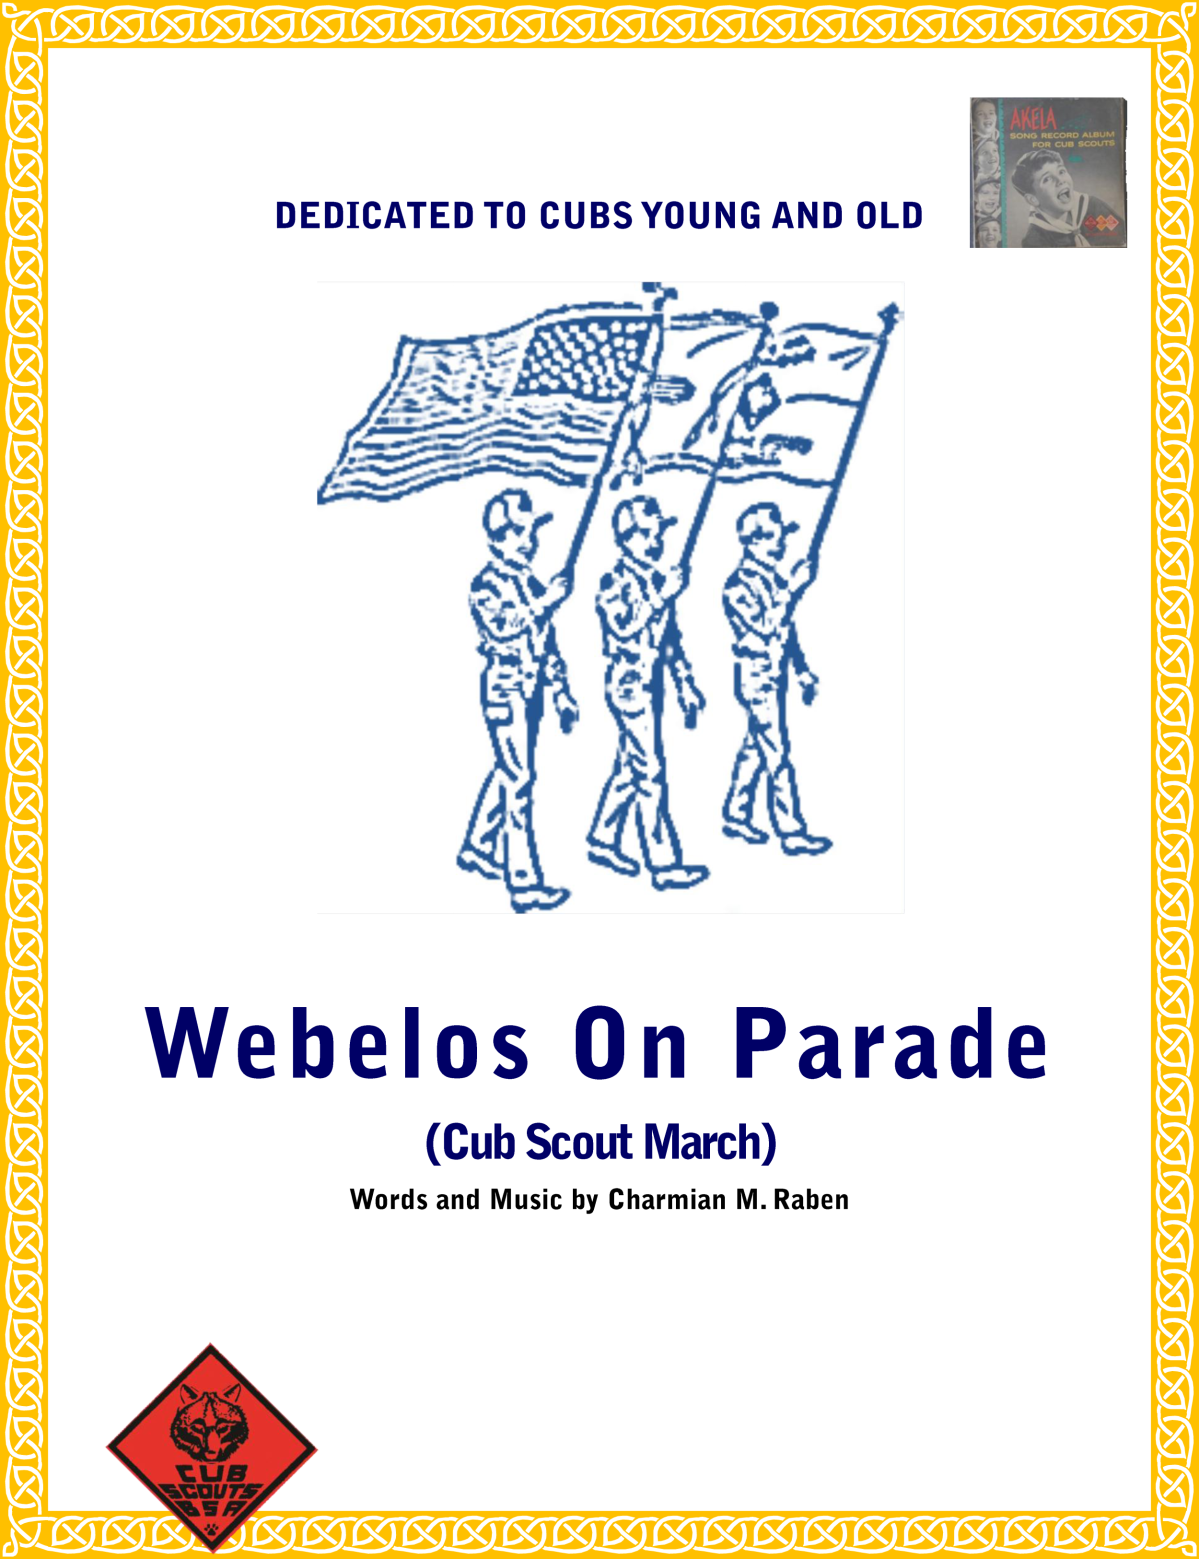 Webelos On Parade cub scout march